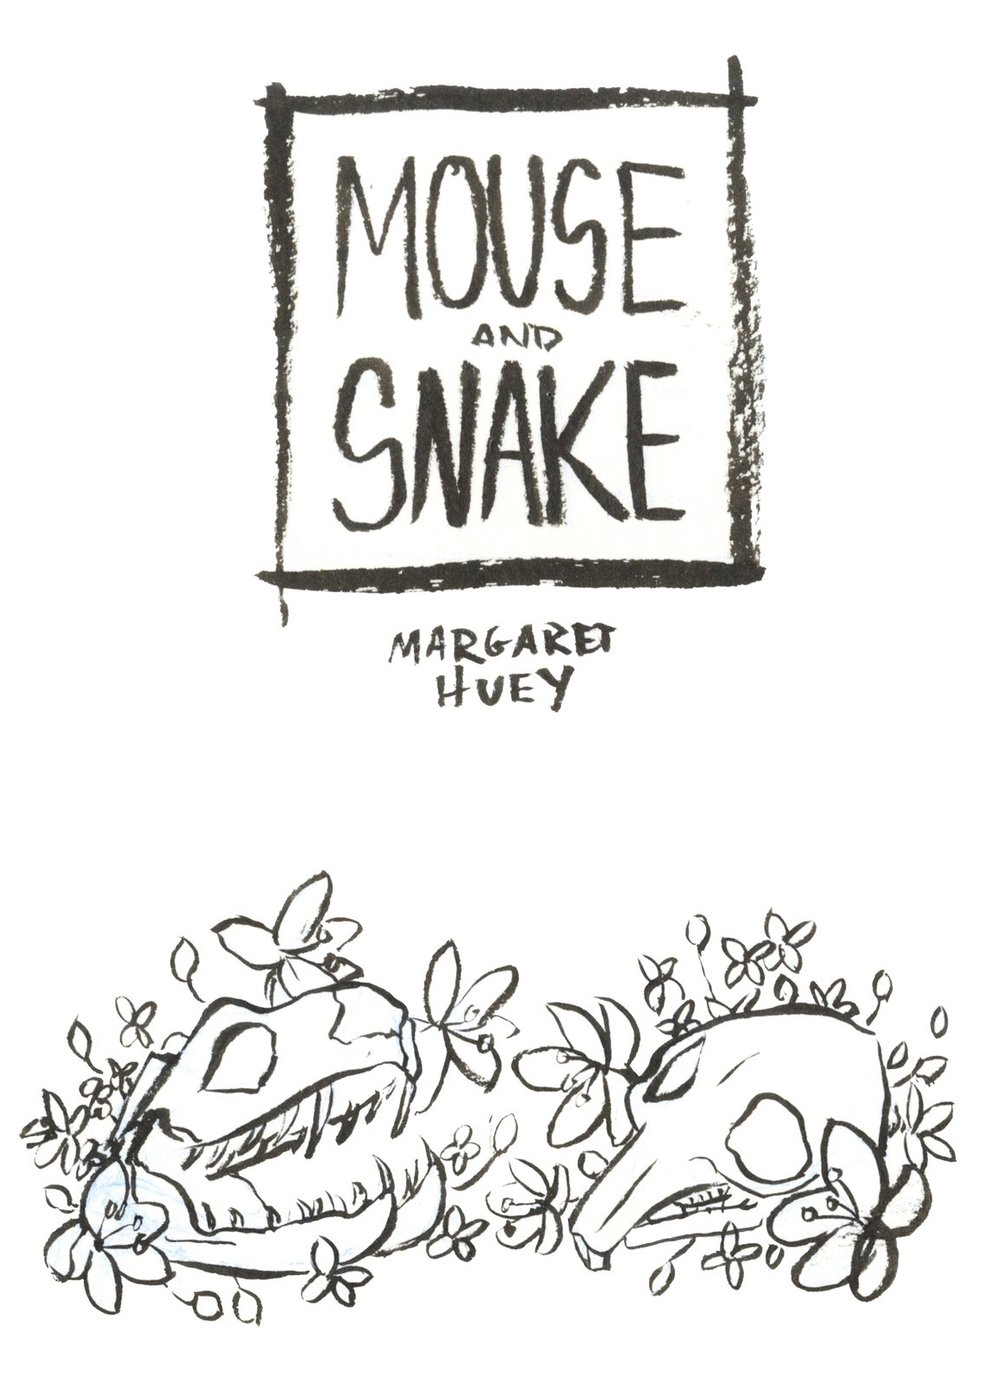 mouse and snake cover.jpg